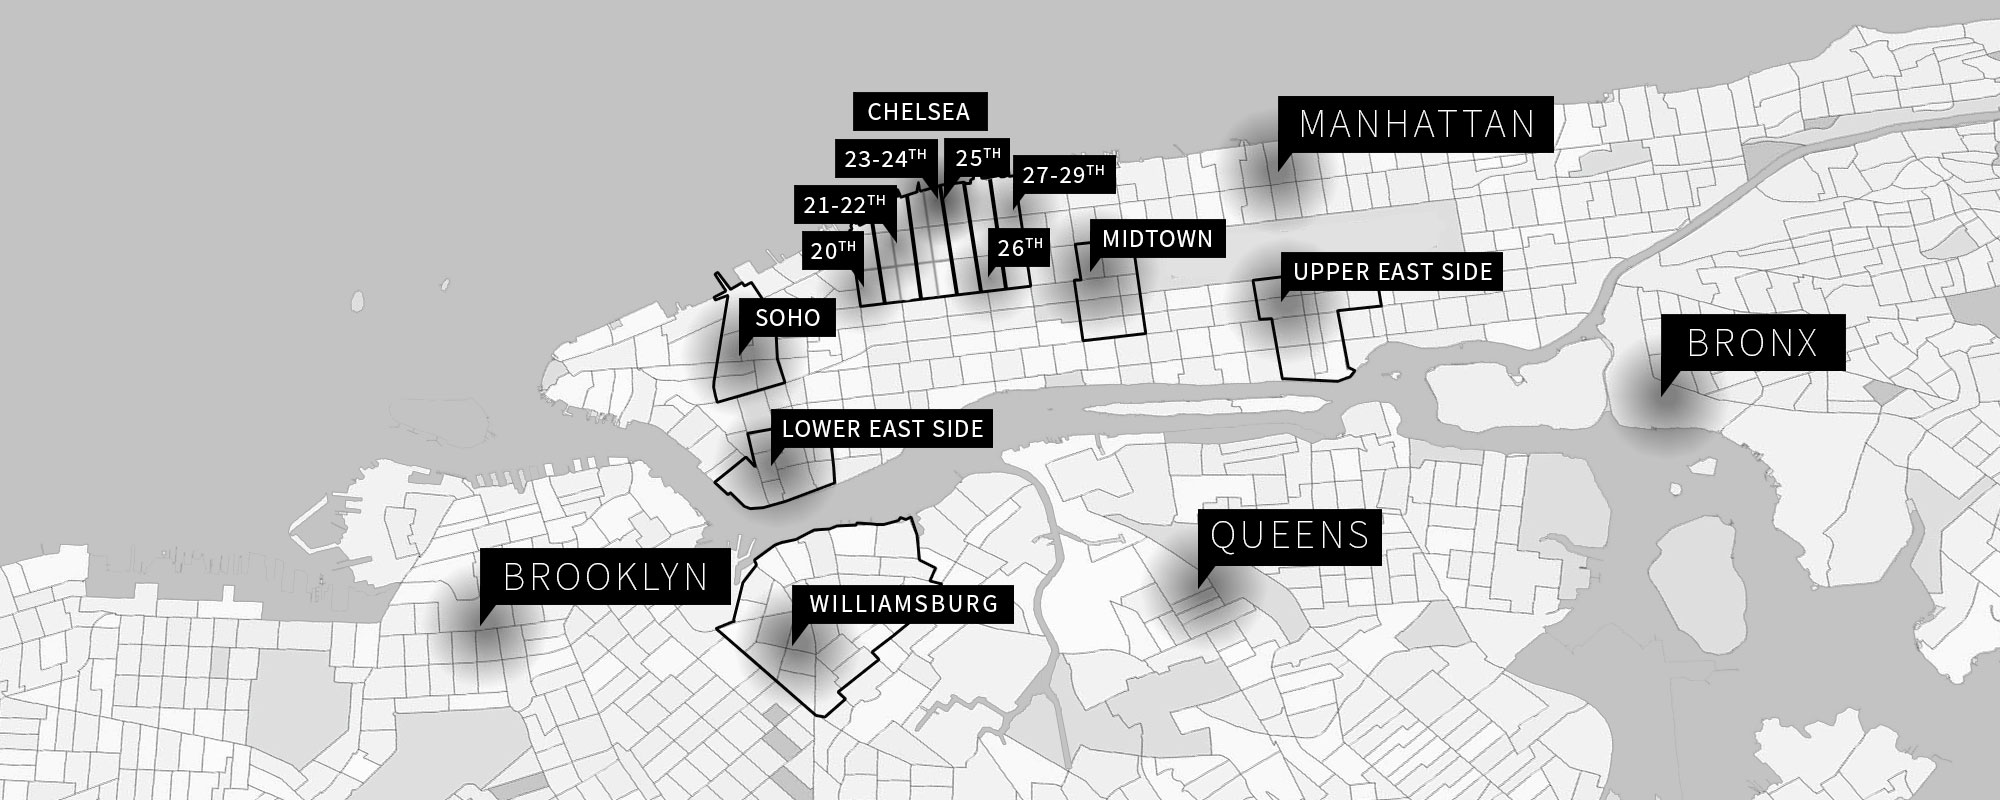 New York Art Galleries Guide Chelsea Galleries Map on